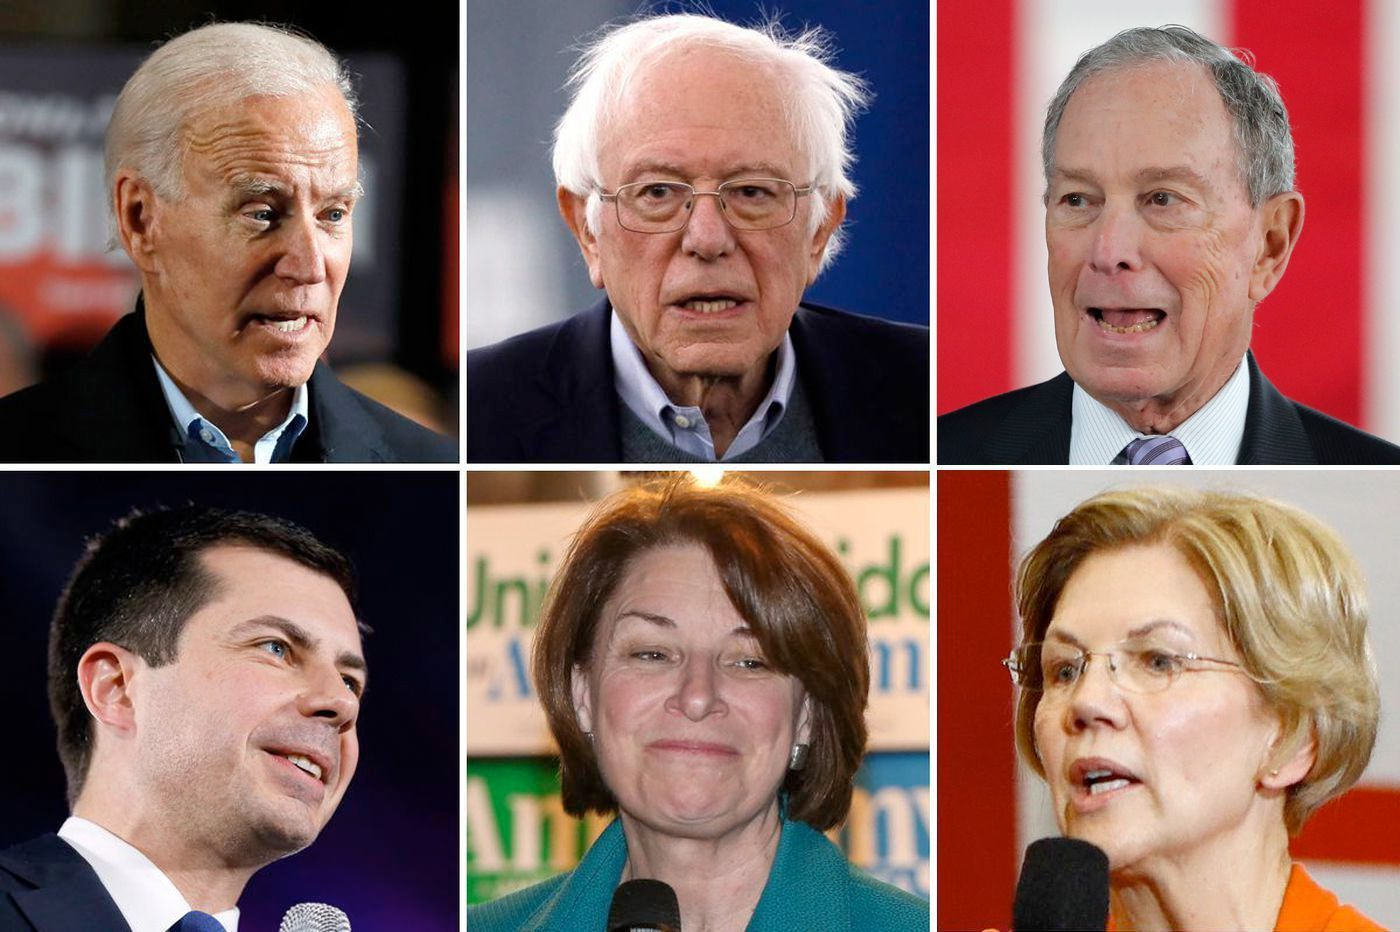 Democratic debate: Start time, candidates, how to watch and stream on NBC and MSNBC